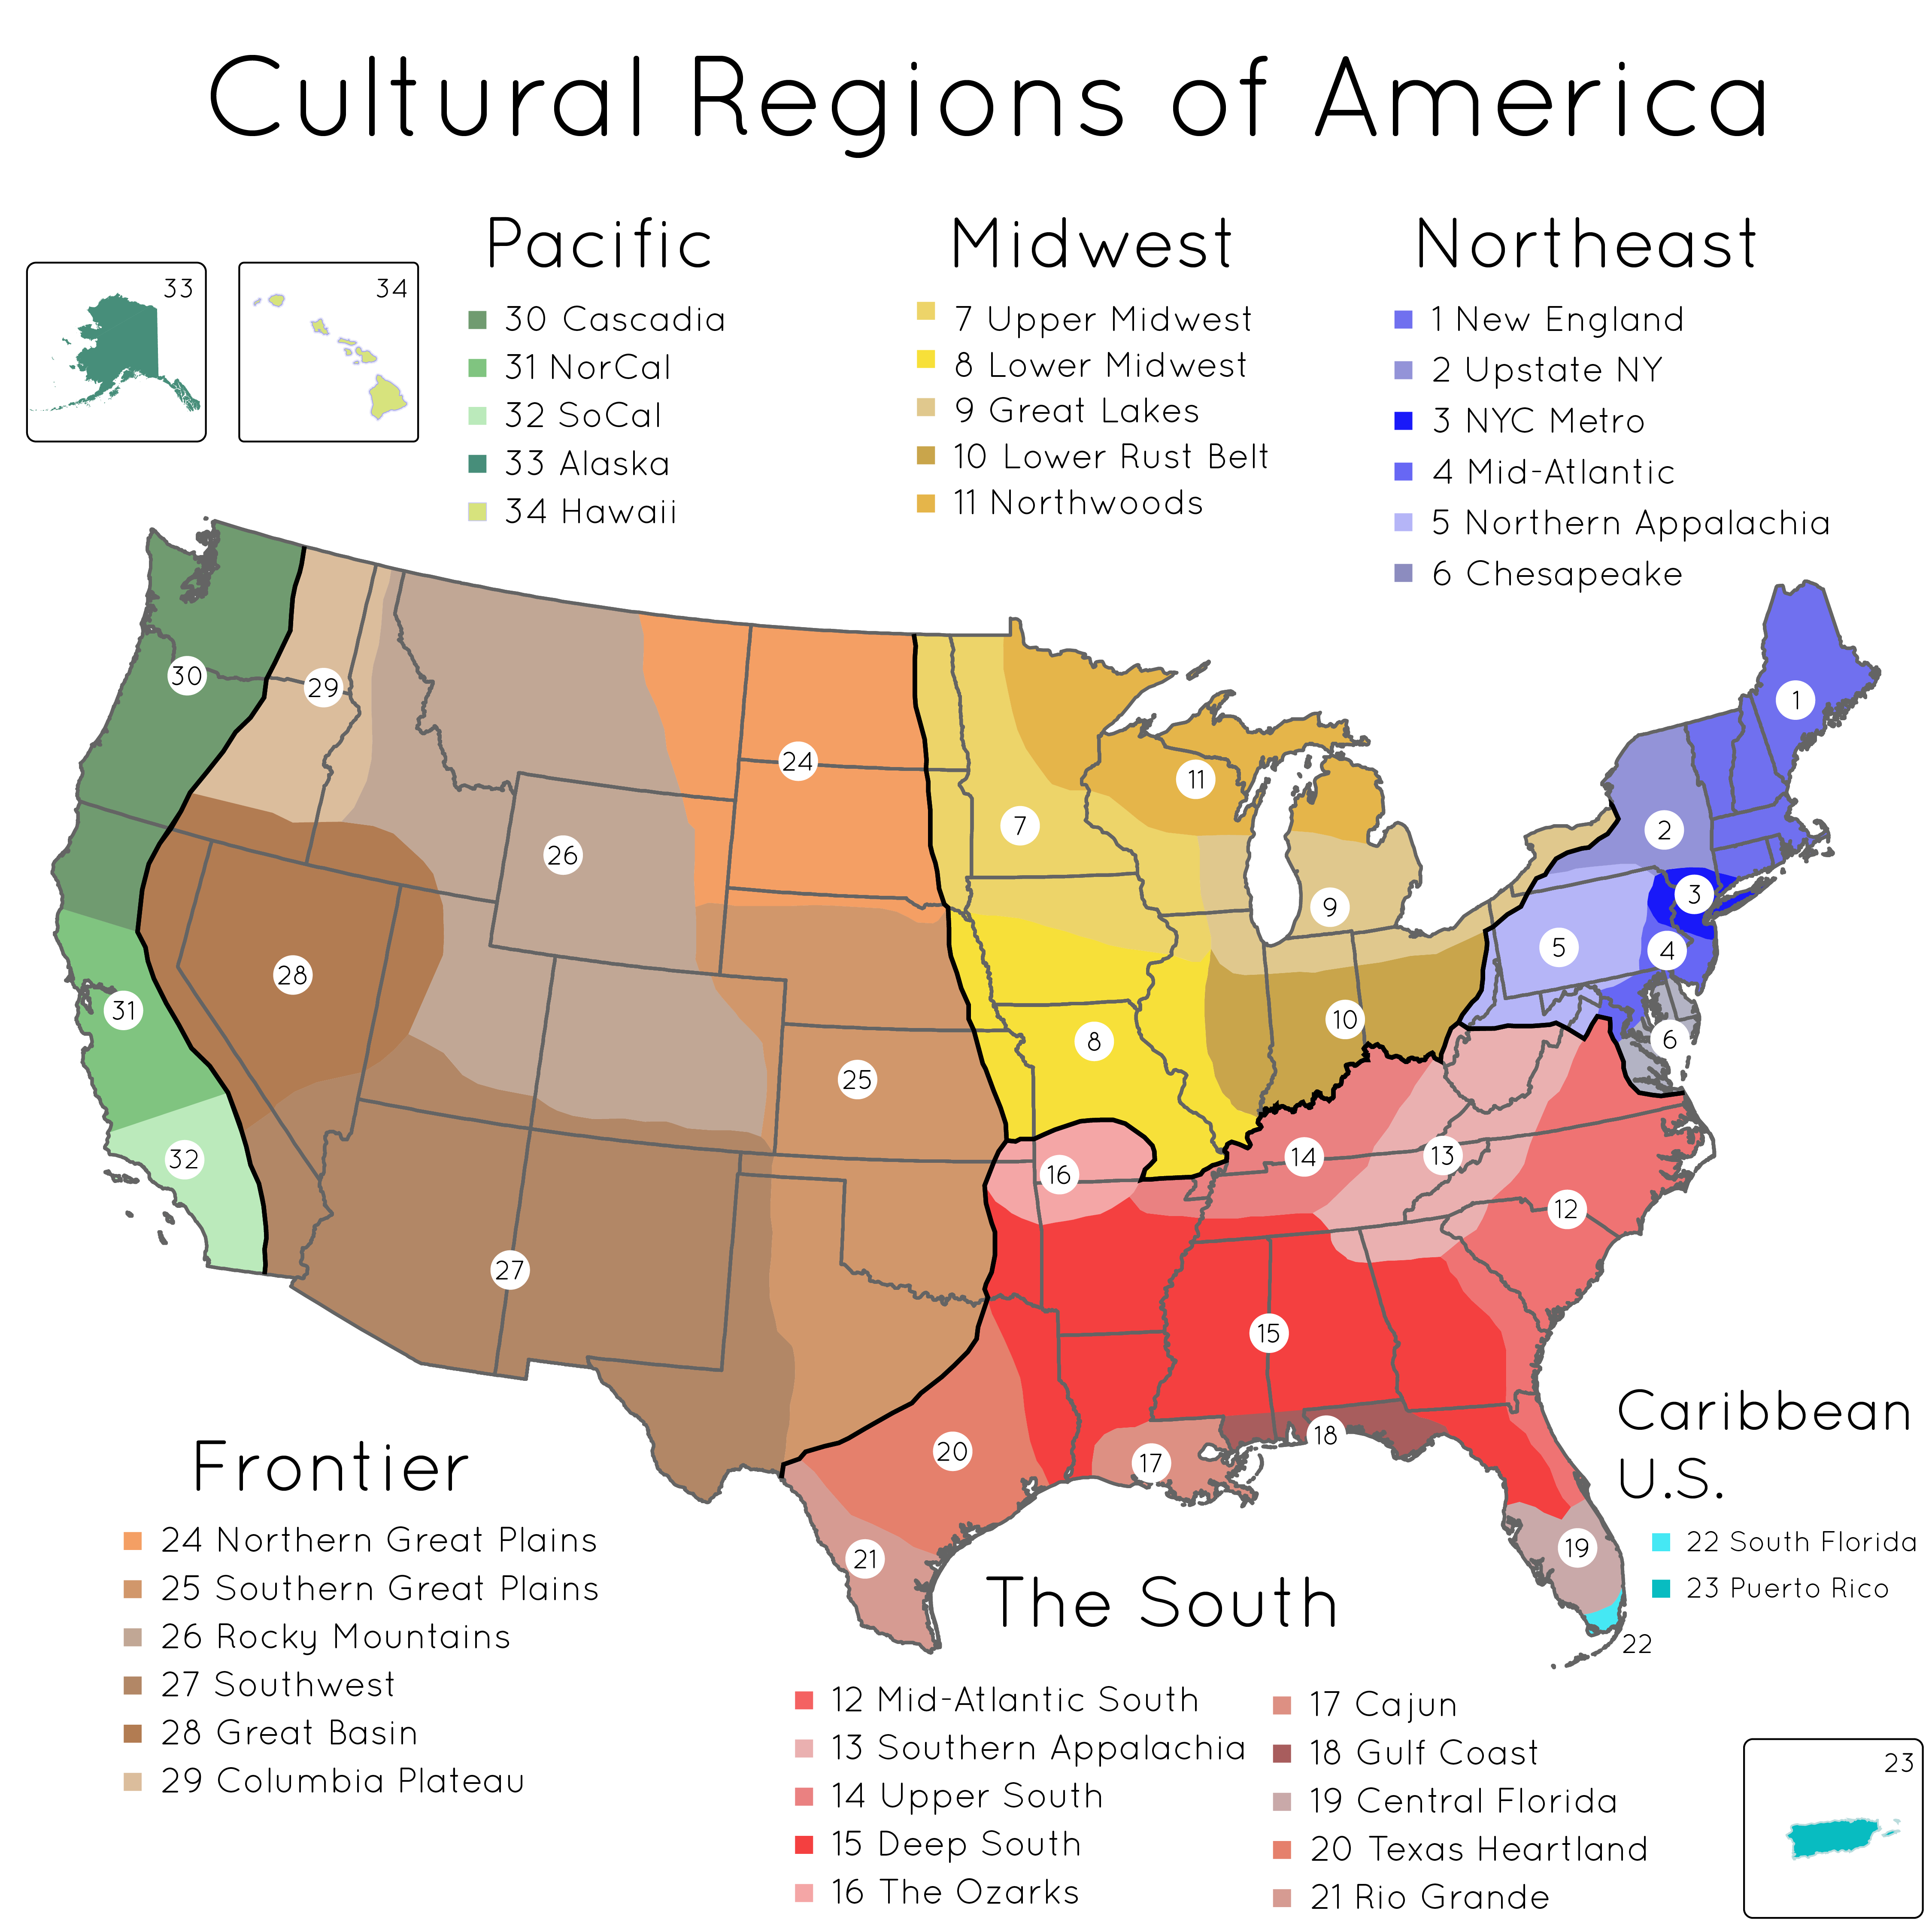 Cultural Regions of America | Historical maps, Map, America on us states of america, usa map guide, usa map europe, usa maps united states, usa map vacation, usa map paint, usa map houston, usa map new zealand, usa united states of america, usa flag of america, usa map modern, usa map black, usa map turkey, usa map online, usa south america, star of america, home of america, weather of america, usa usa map, usa map georgia,